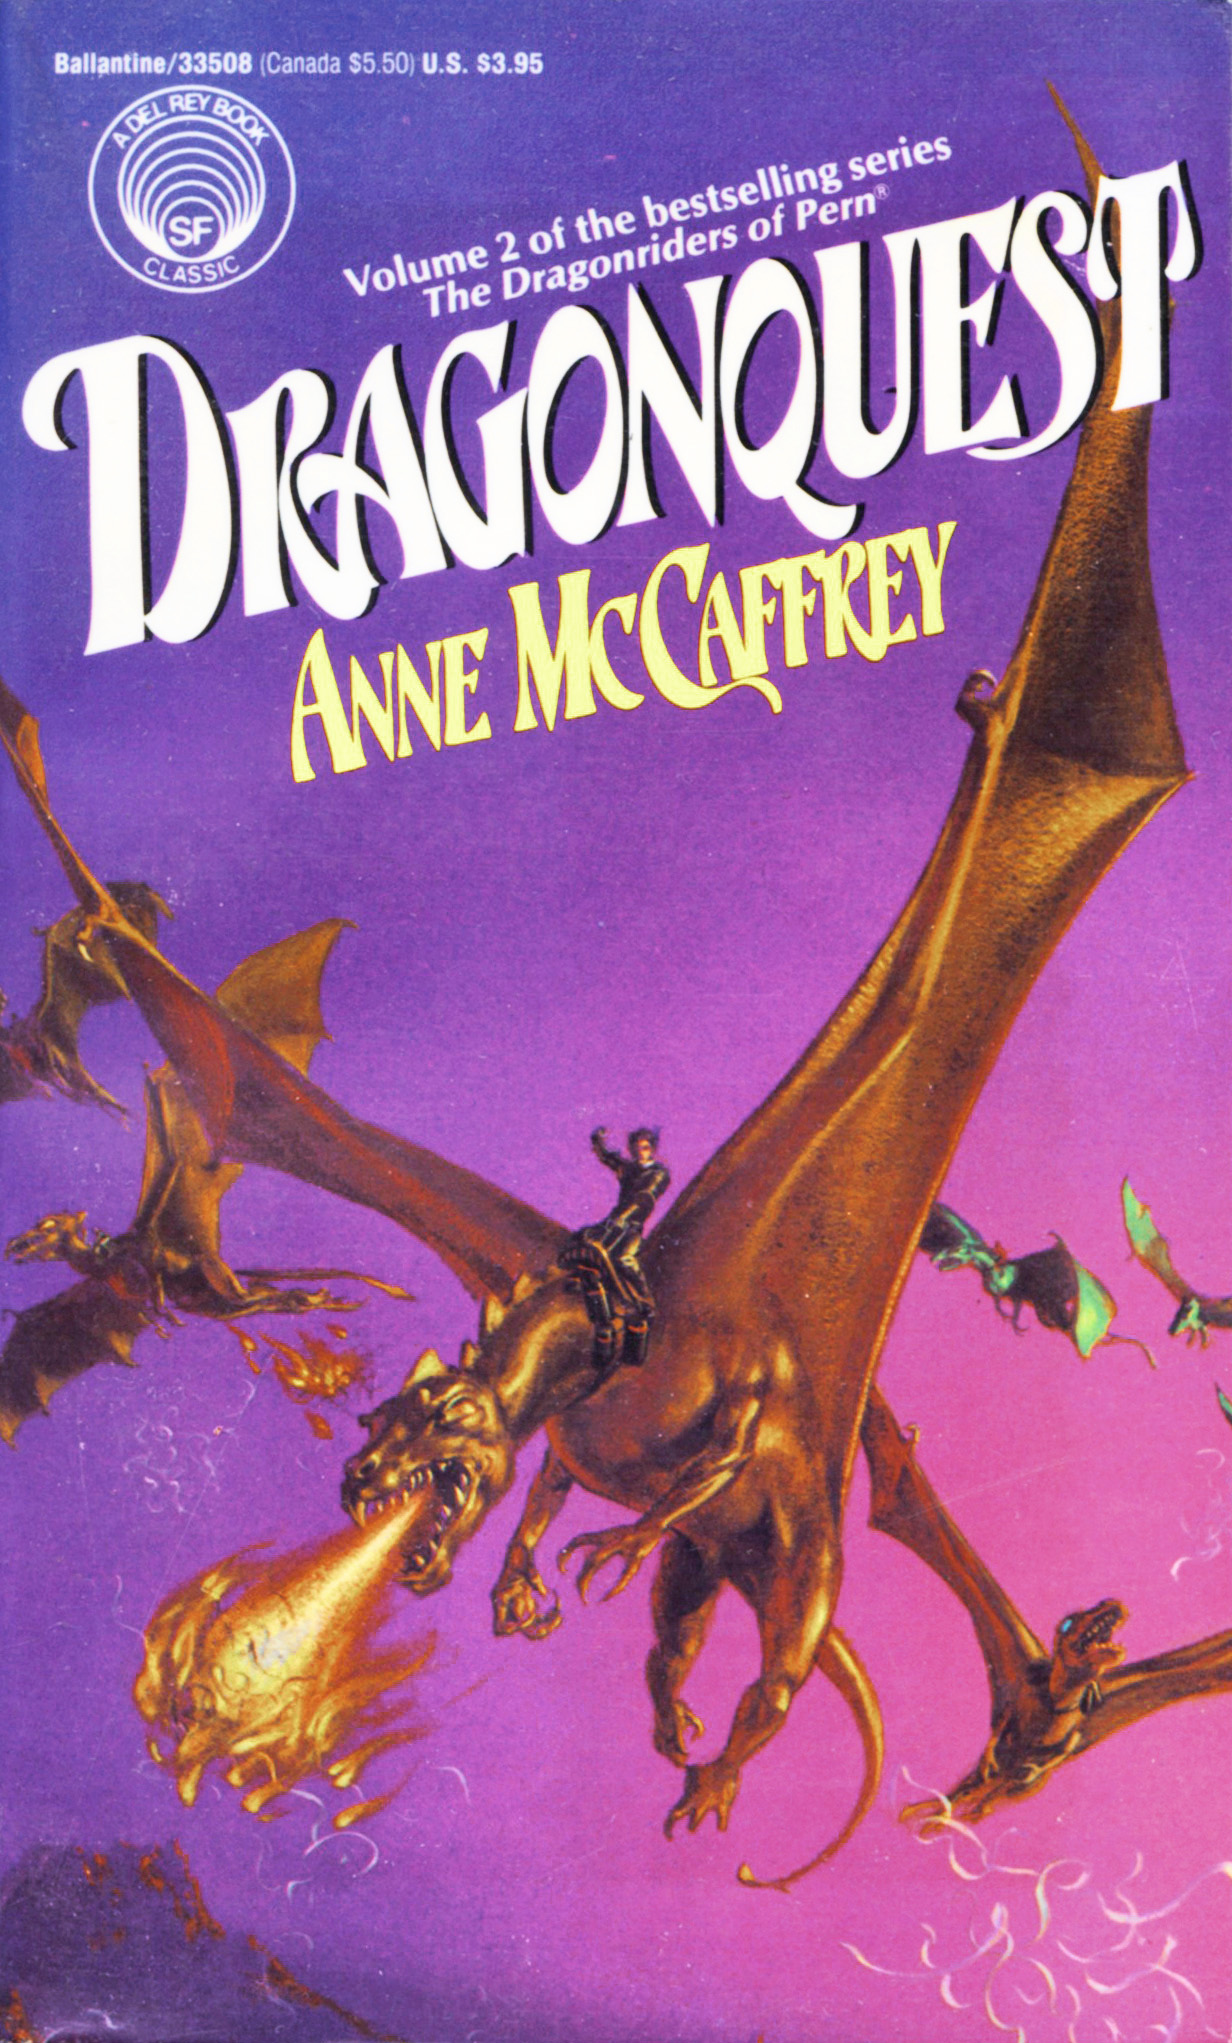 dragonquest dragonriders of pern series